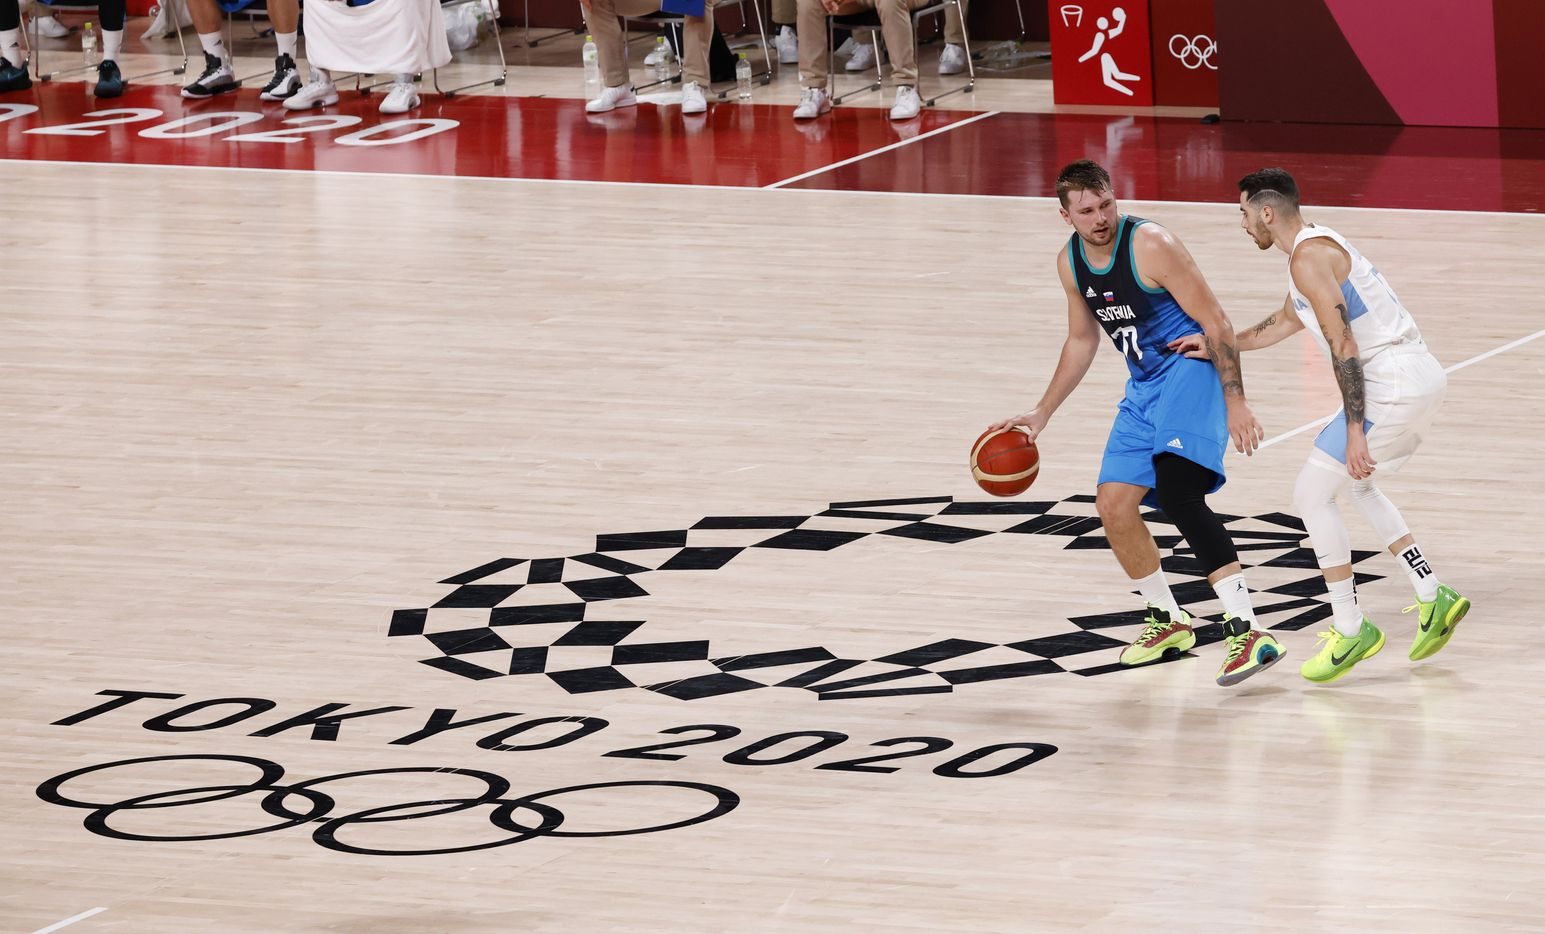 Slovenia's Luka Doncic (77) brings the ball up the court as Argentina's Luca Vildoza (17) defends in the second half of play during the postponed 2020 Tokyo Olympics at Saitama Super Arena on Monday, July 26, 2021, in Saitama, Japan. Slovenia defeated Argentina 118-100. (Vernon Bryant/The Dallas Morning News)